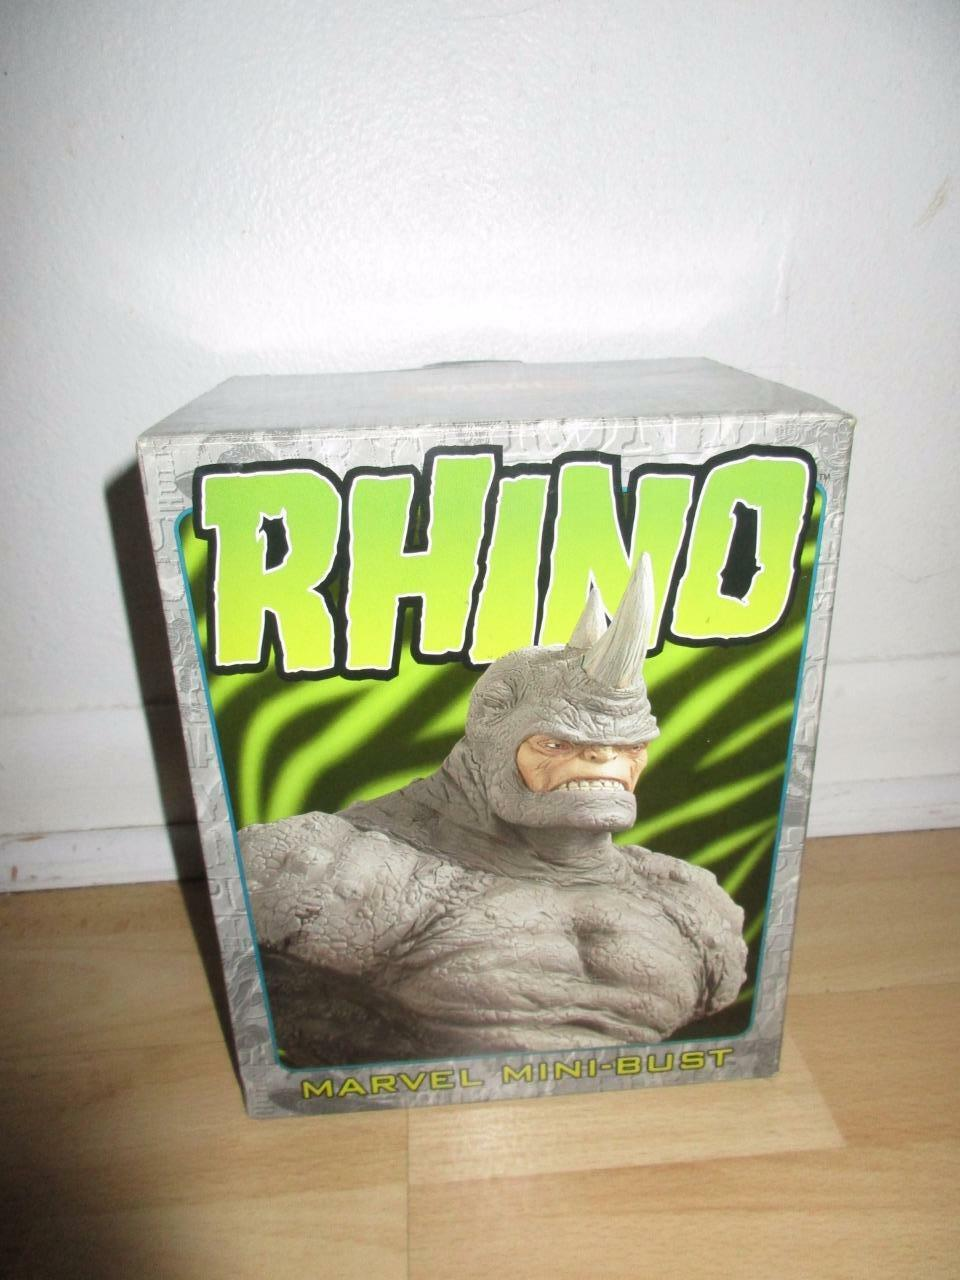 New Bowen Designs Rhino Marvel Mini-Bust 3953 6000 Sculpted Strictly Strictly Strictly Limited 4b33e7